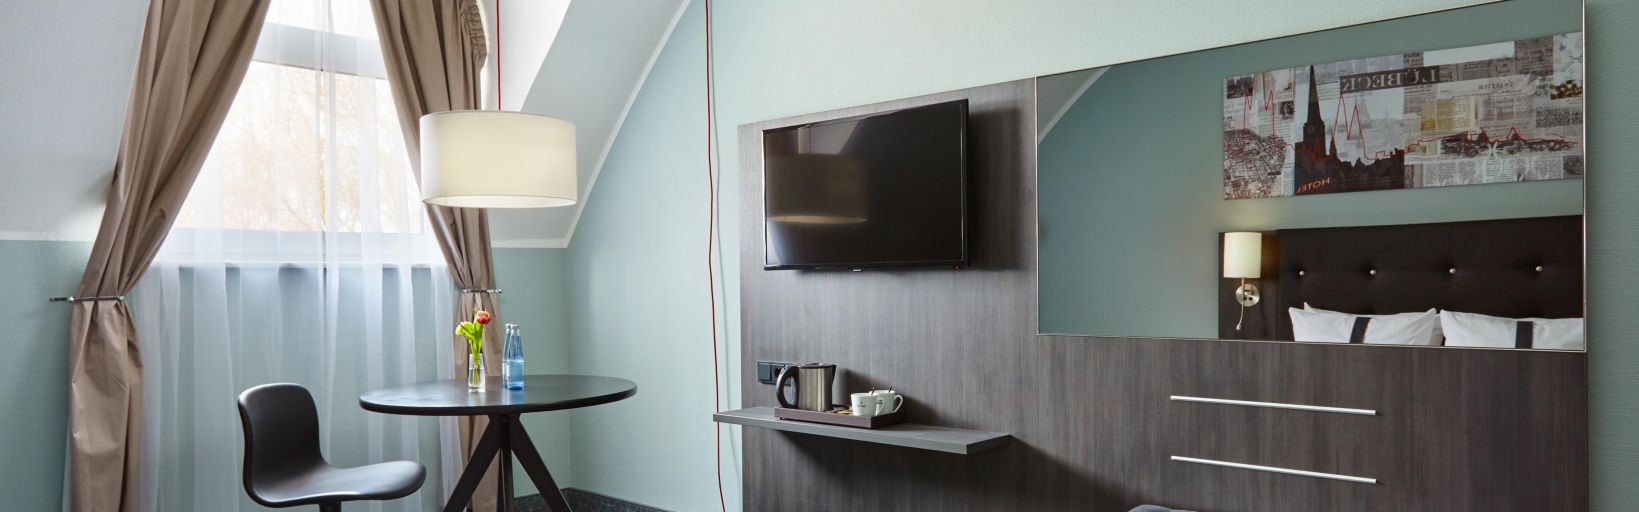 Holiday Inn Lubeck - Room Pictures & Amenities